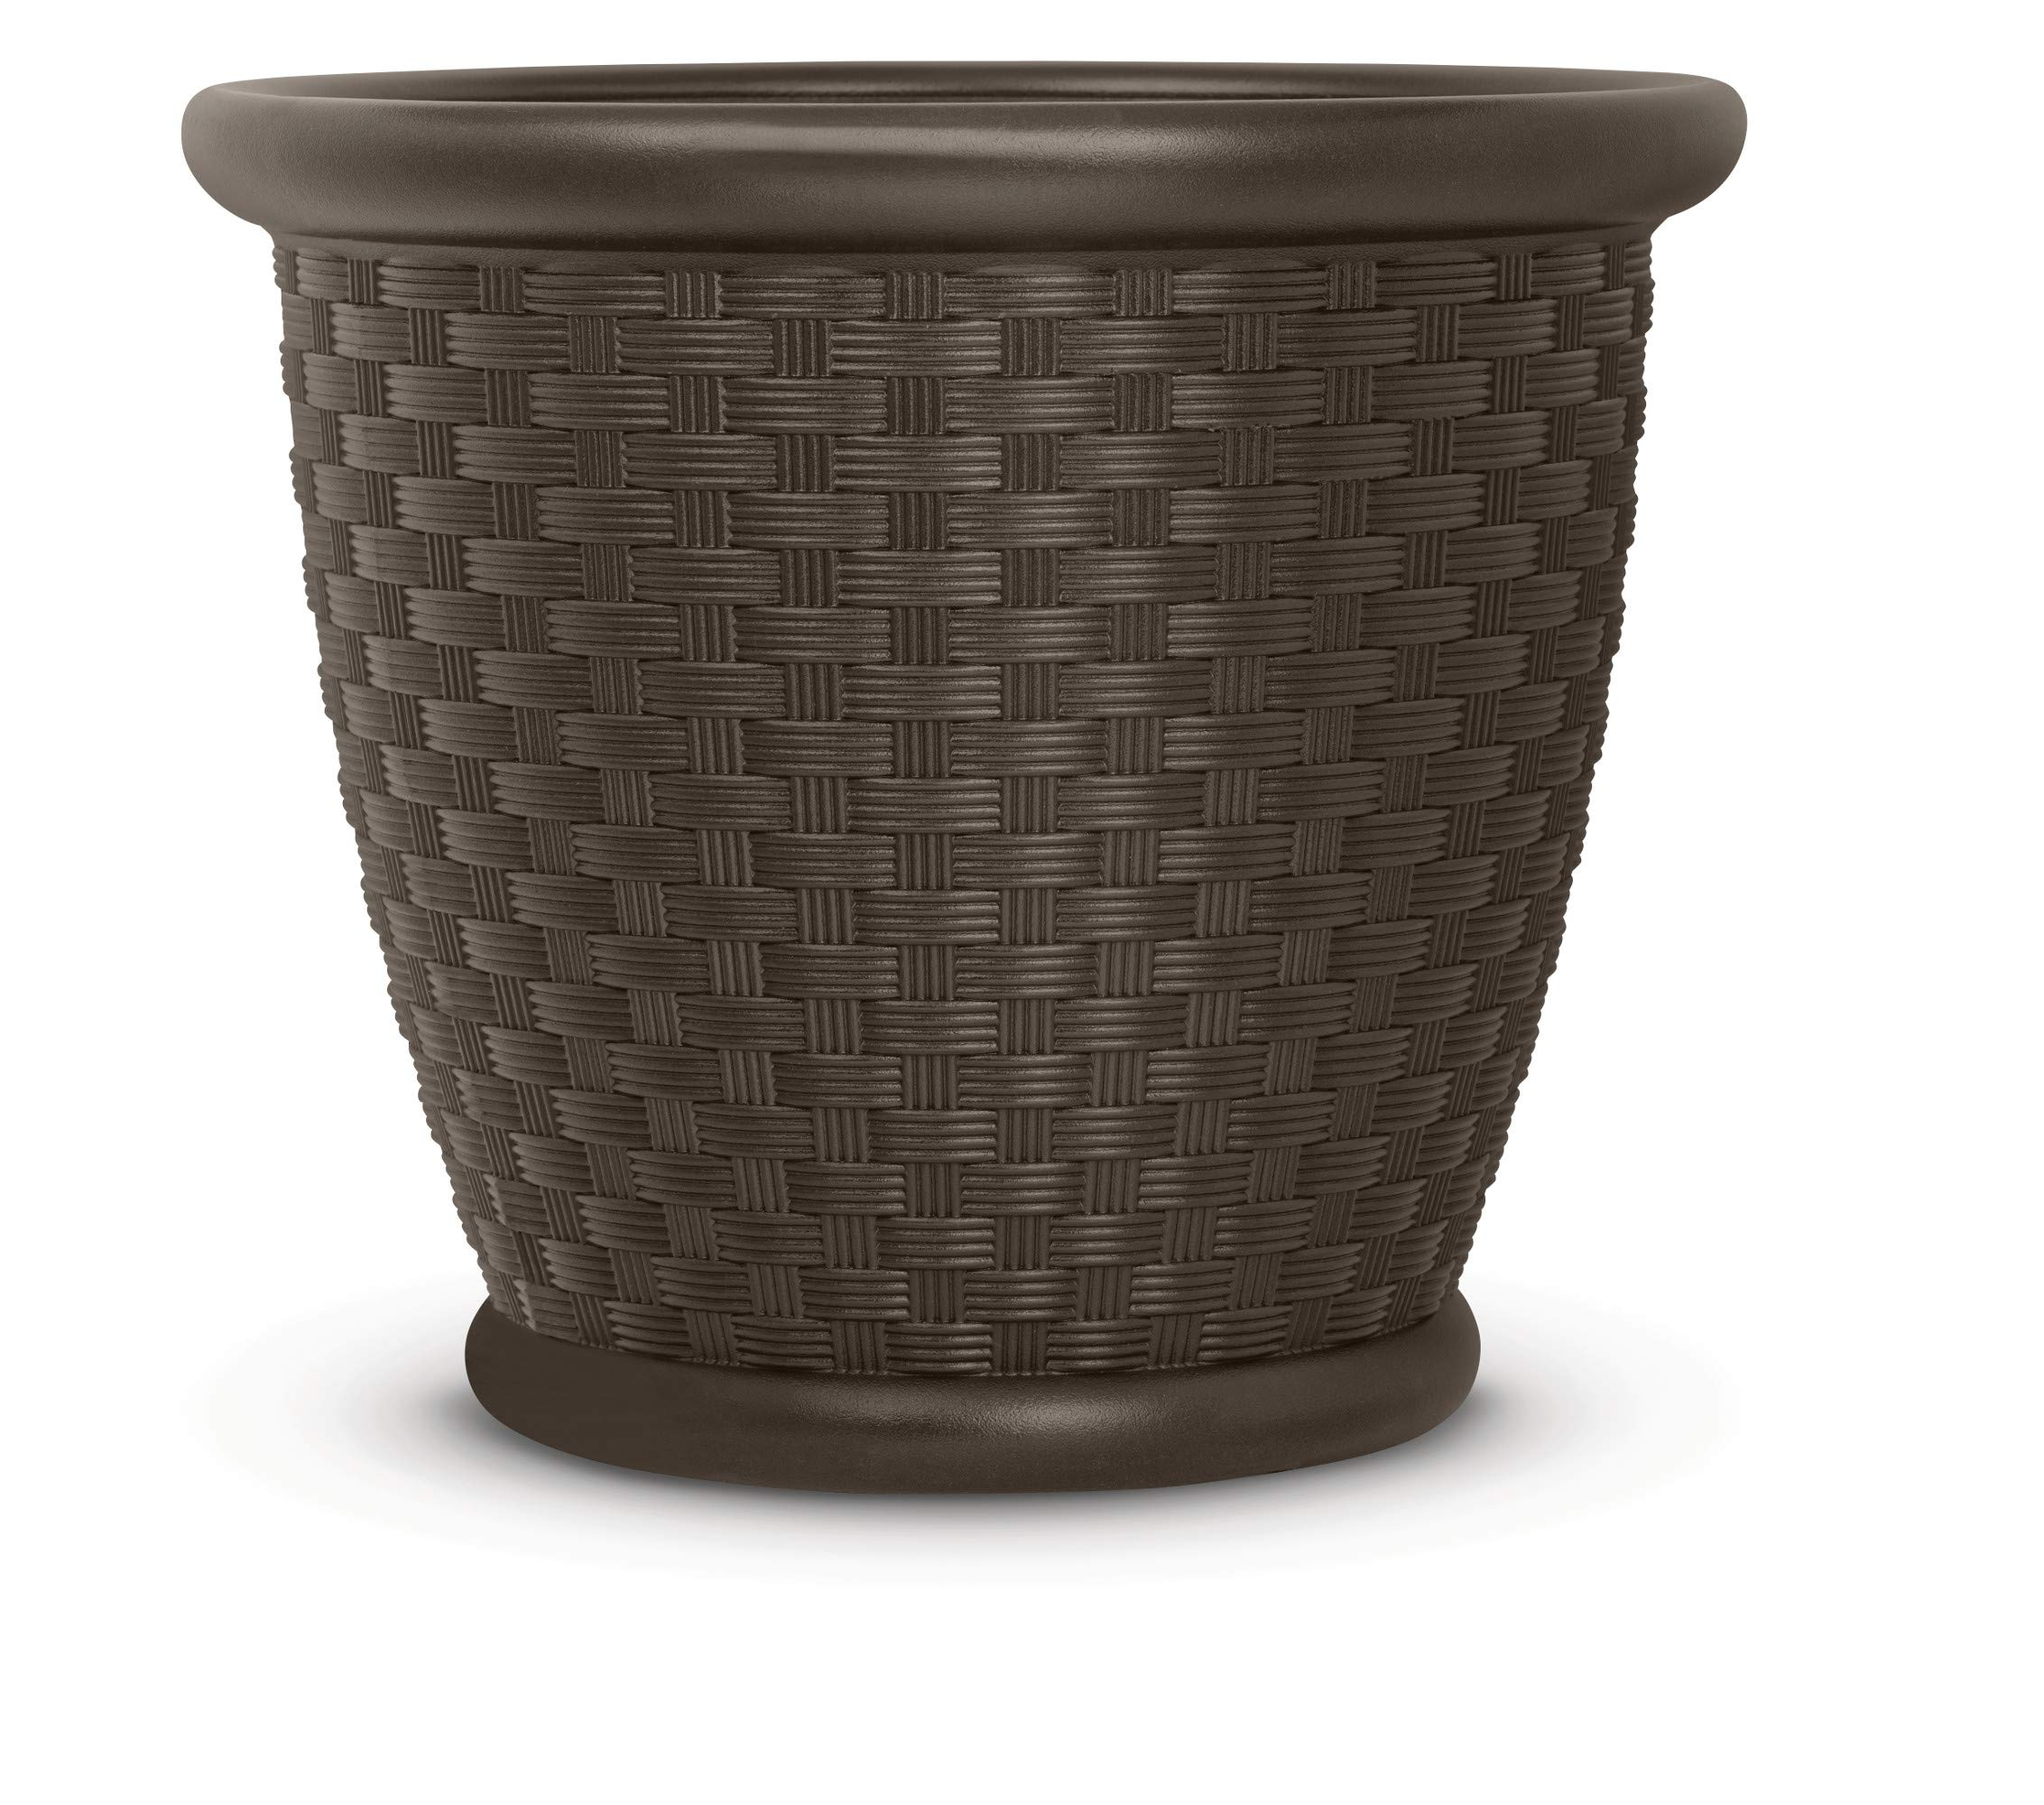 Suncast22'' Sonora Resin Wicker Flower Planter Pot - Contemporary Lightweight Flower Pot for Indoor and Outdoor Use, Home, Yard, or Garden - Java by Suncast